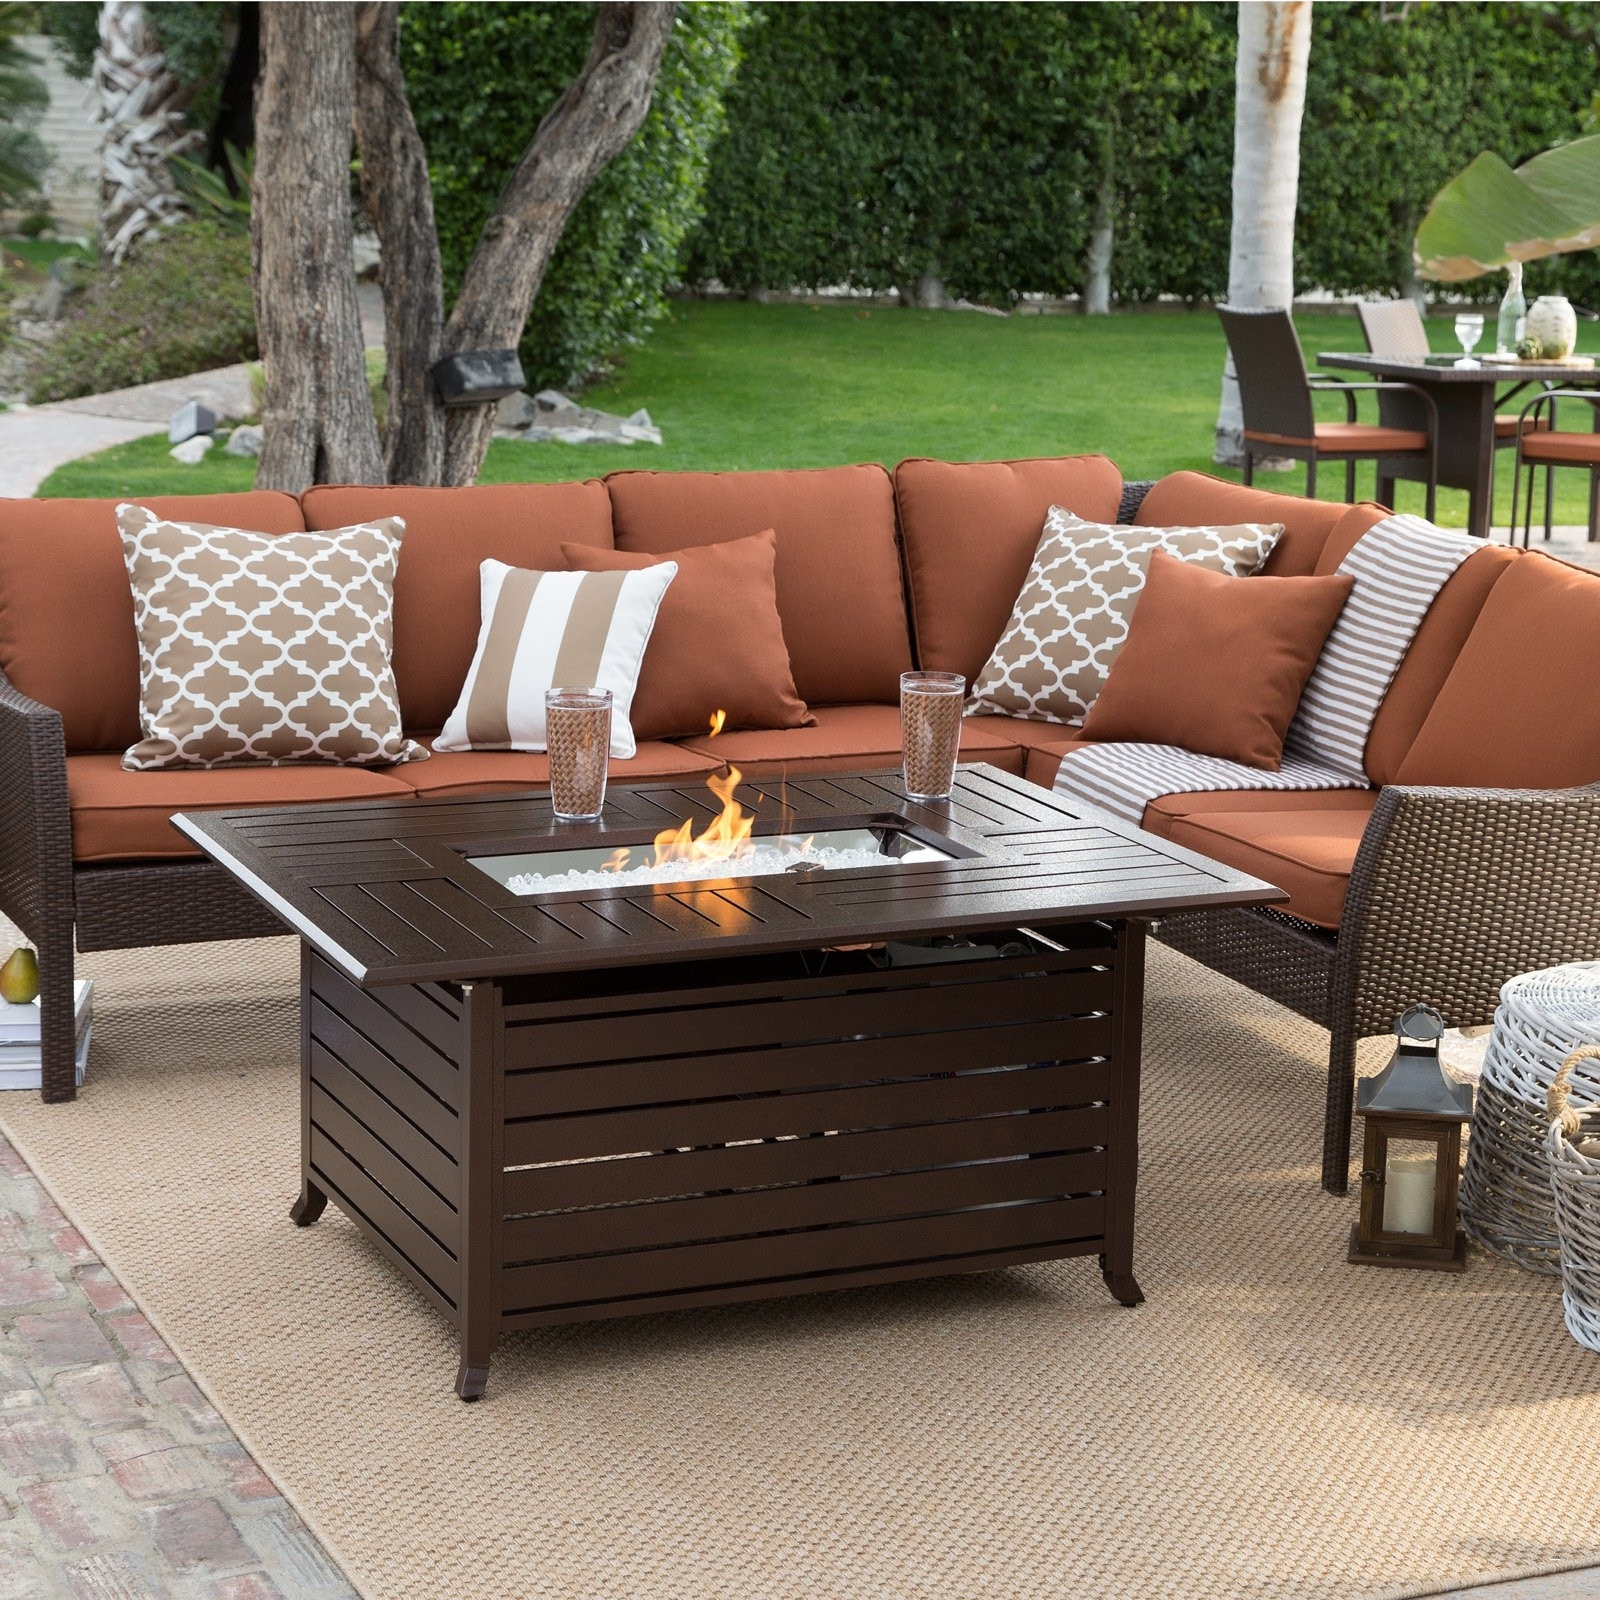 Patio Conversation Sets With Gas Fire Pit Throughout Fashionable Fireplace Tables Outdoor Unique Patio Conversation Sets With Fire (View 14 of 20)